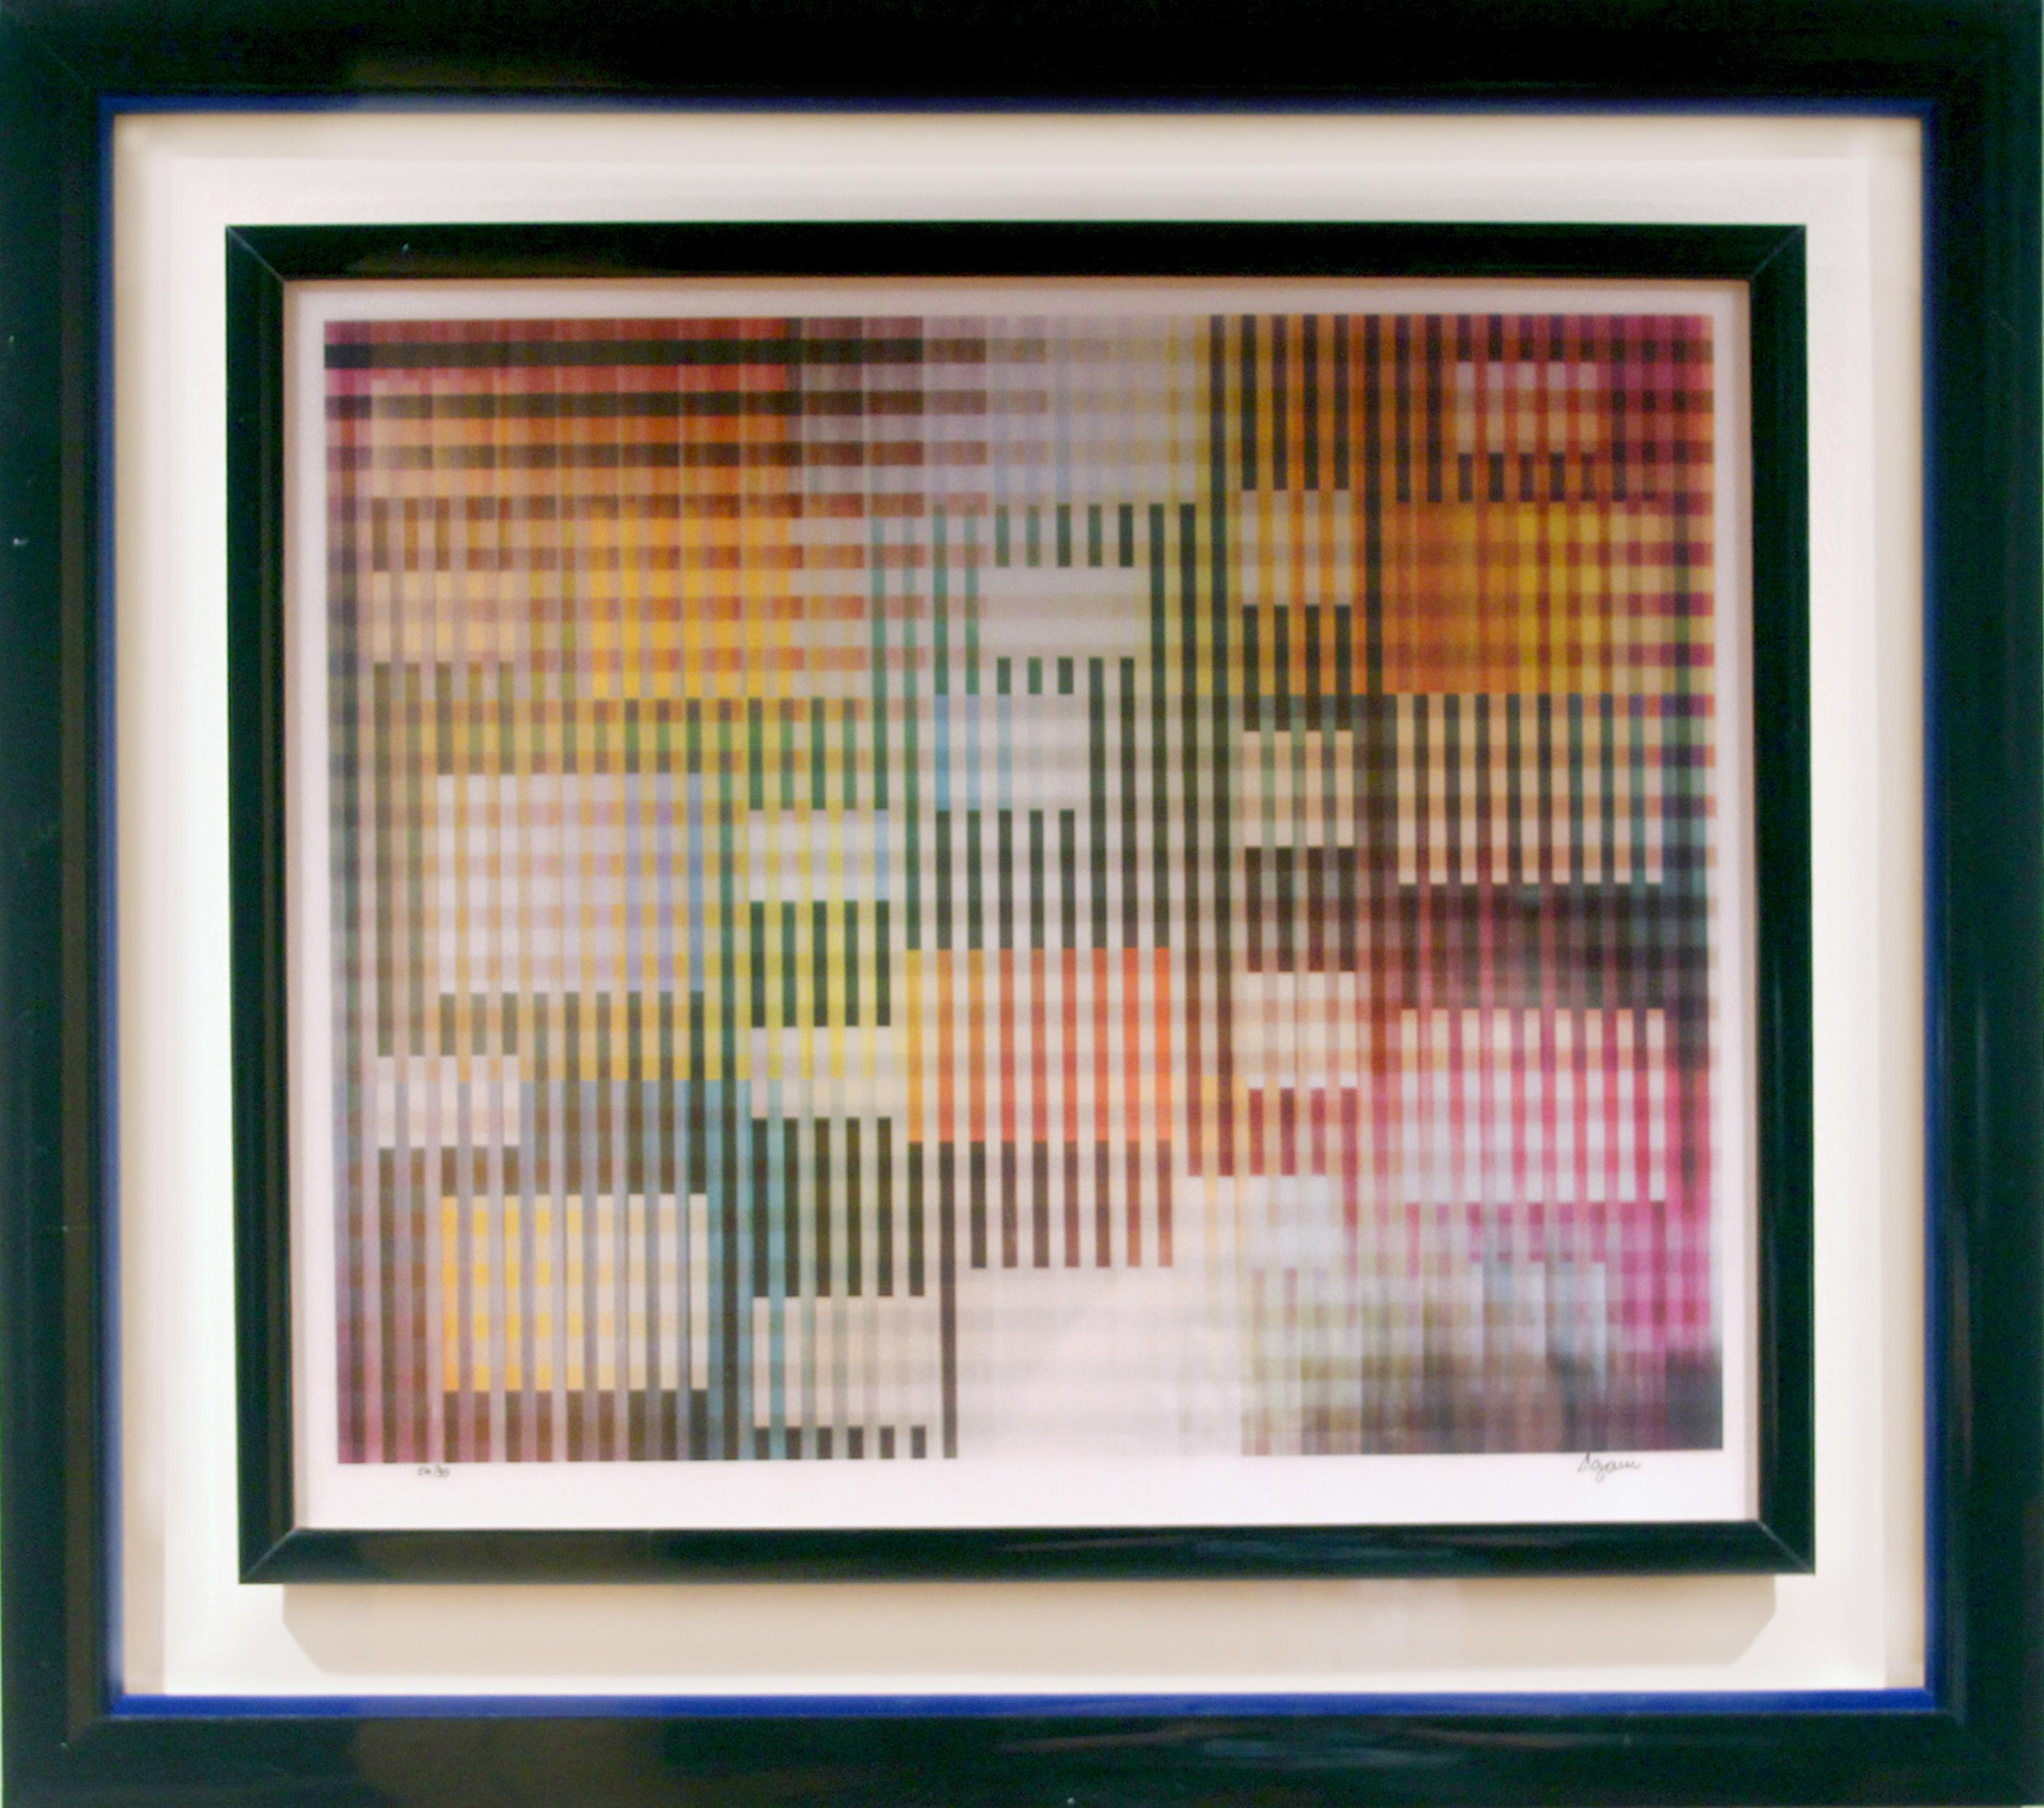 Yaacov Agam, New Years Eve, Agamograph